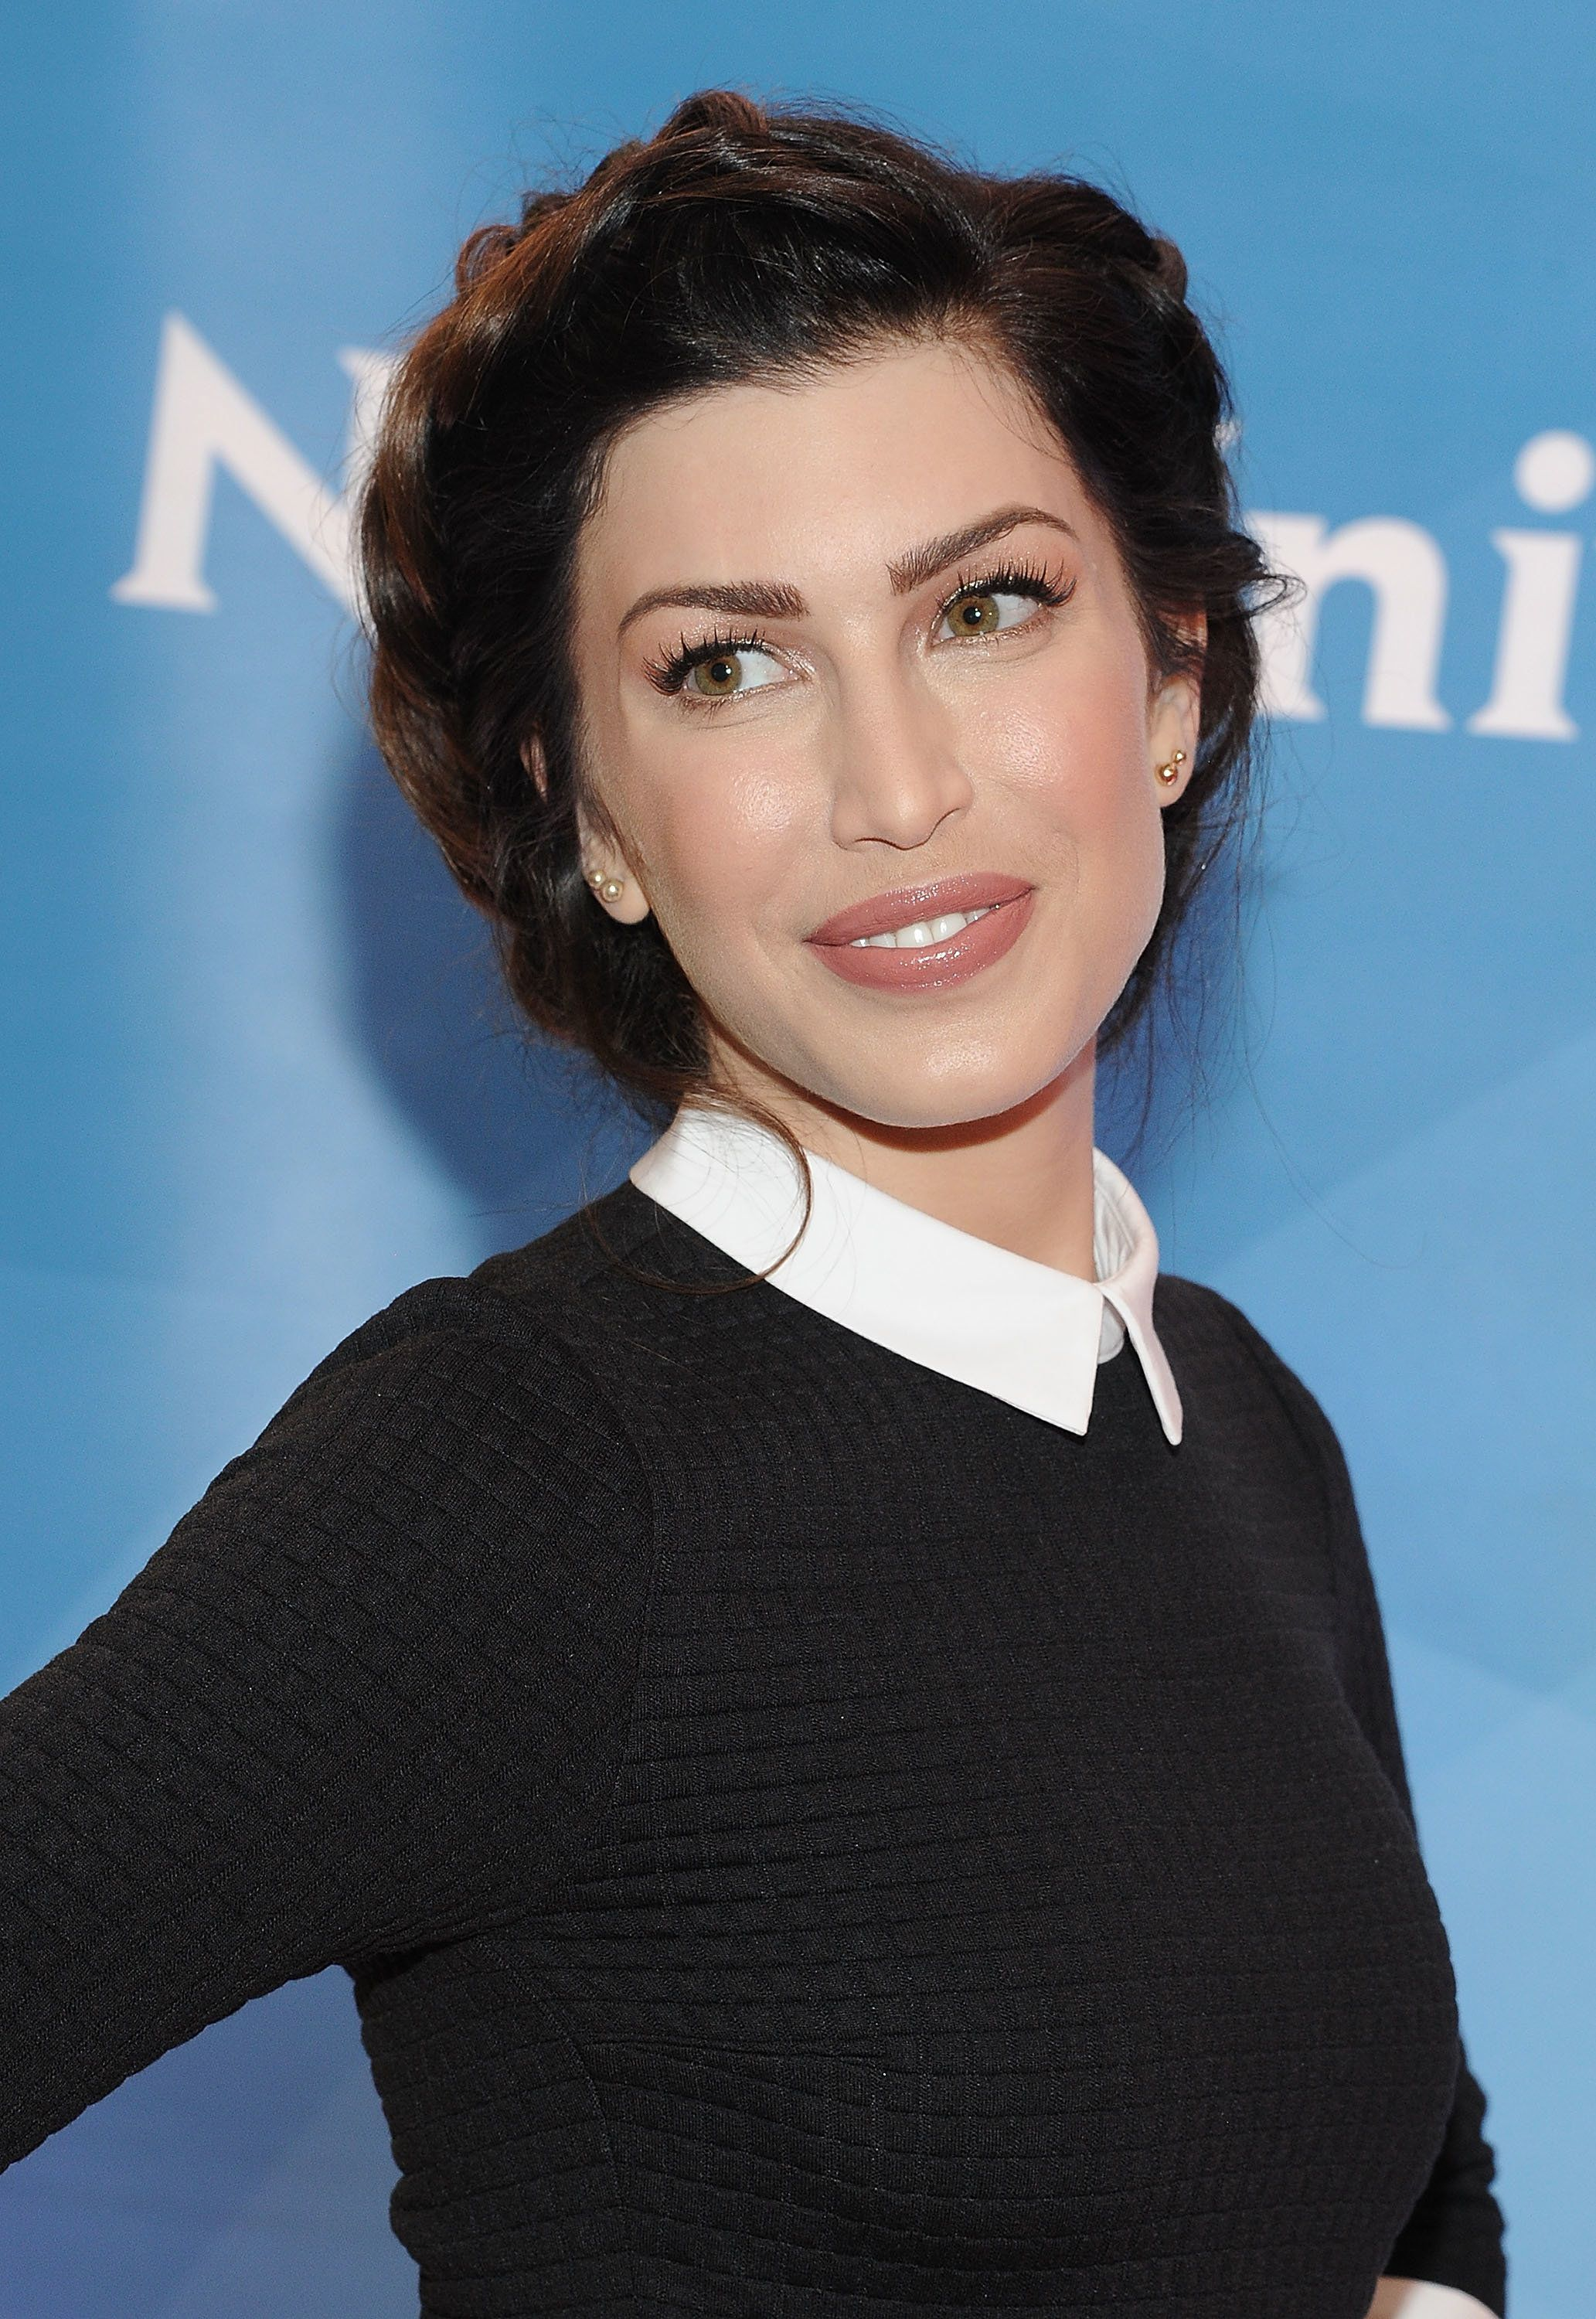 YouTube And VH1 Star Stevie Ryan Dead At